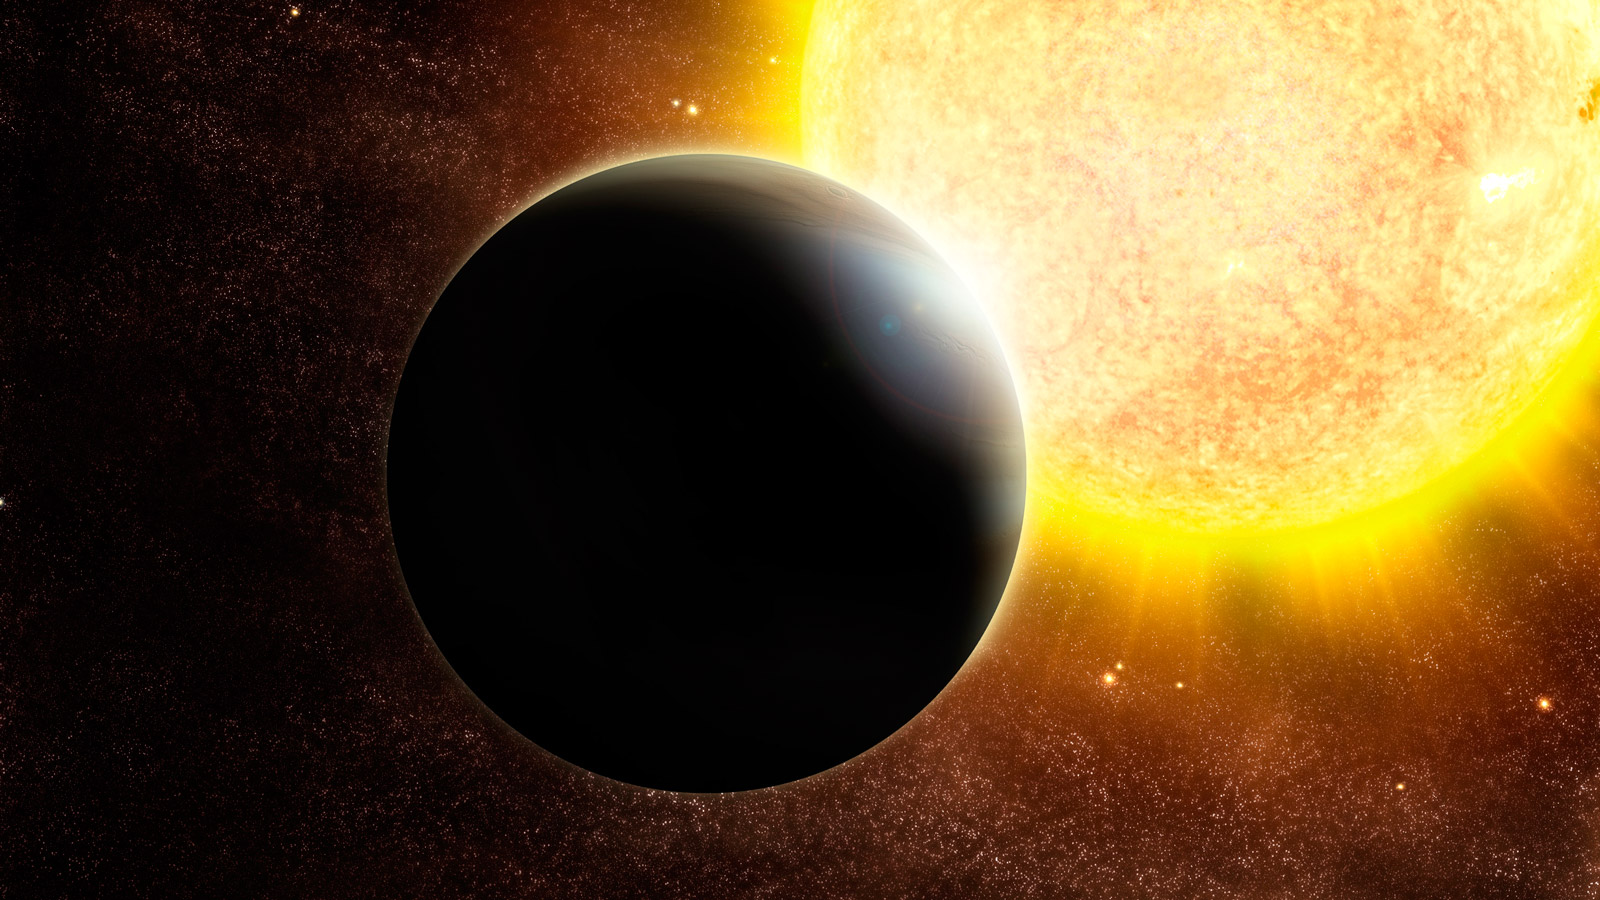 slide 3 - Artist's rendering of an exoplanet and its host star